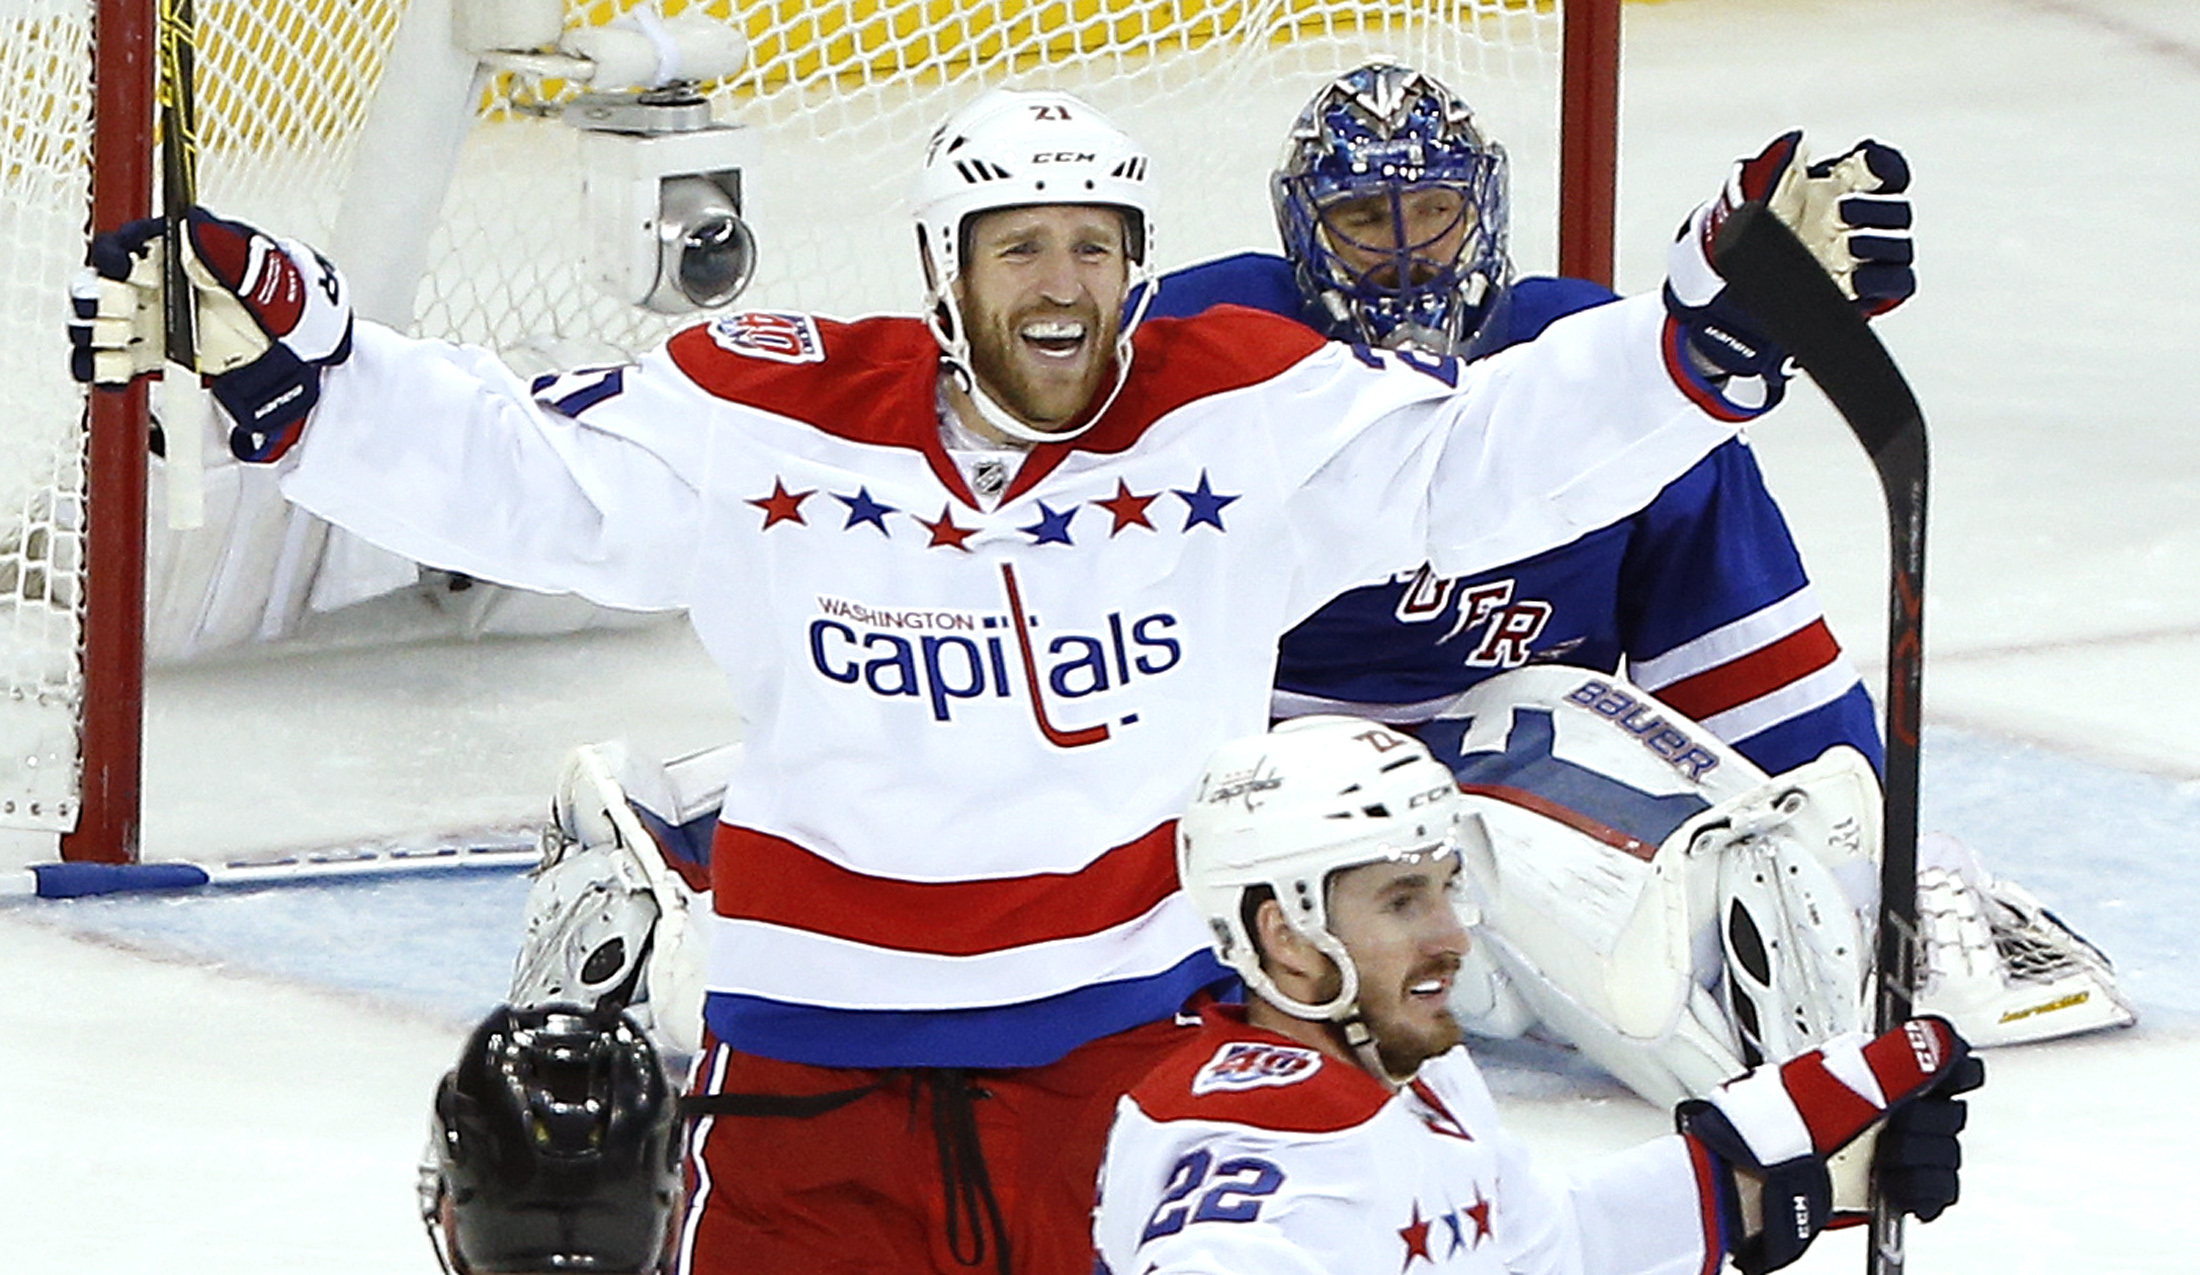 Washington Capitals center Brooks Laich (21) and left wing Curtis Glencross (22) celebrate a third period goal by Glencross against New York Rangers goalie Henrik Lundqvist during Game 5 in the second round of the NHL Stanley Cup hockey playoffs, Friday,